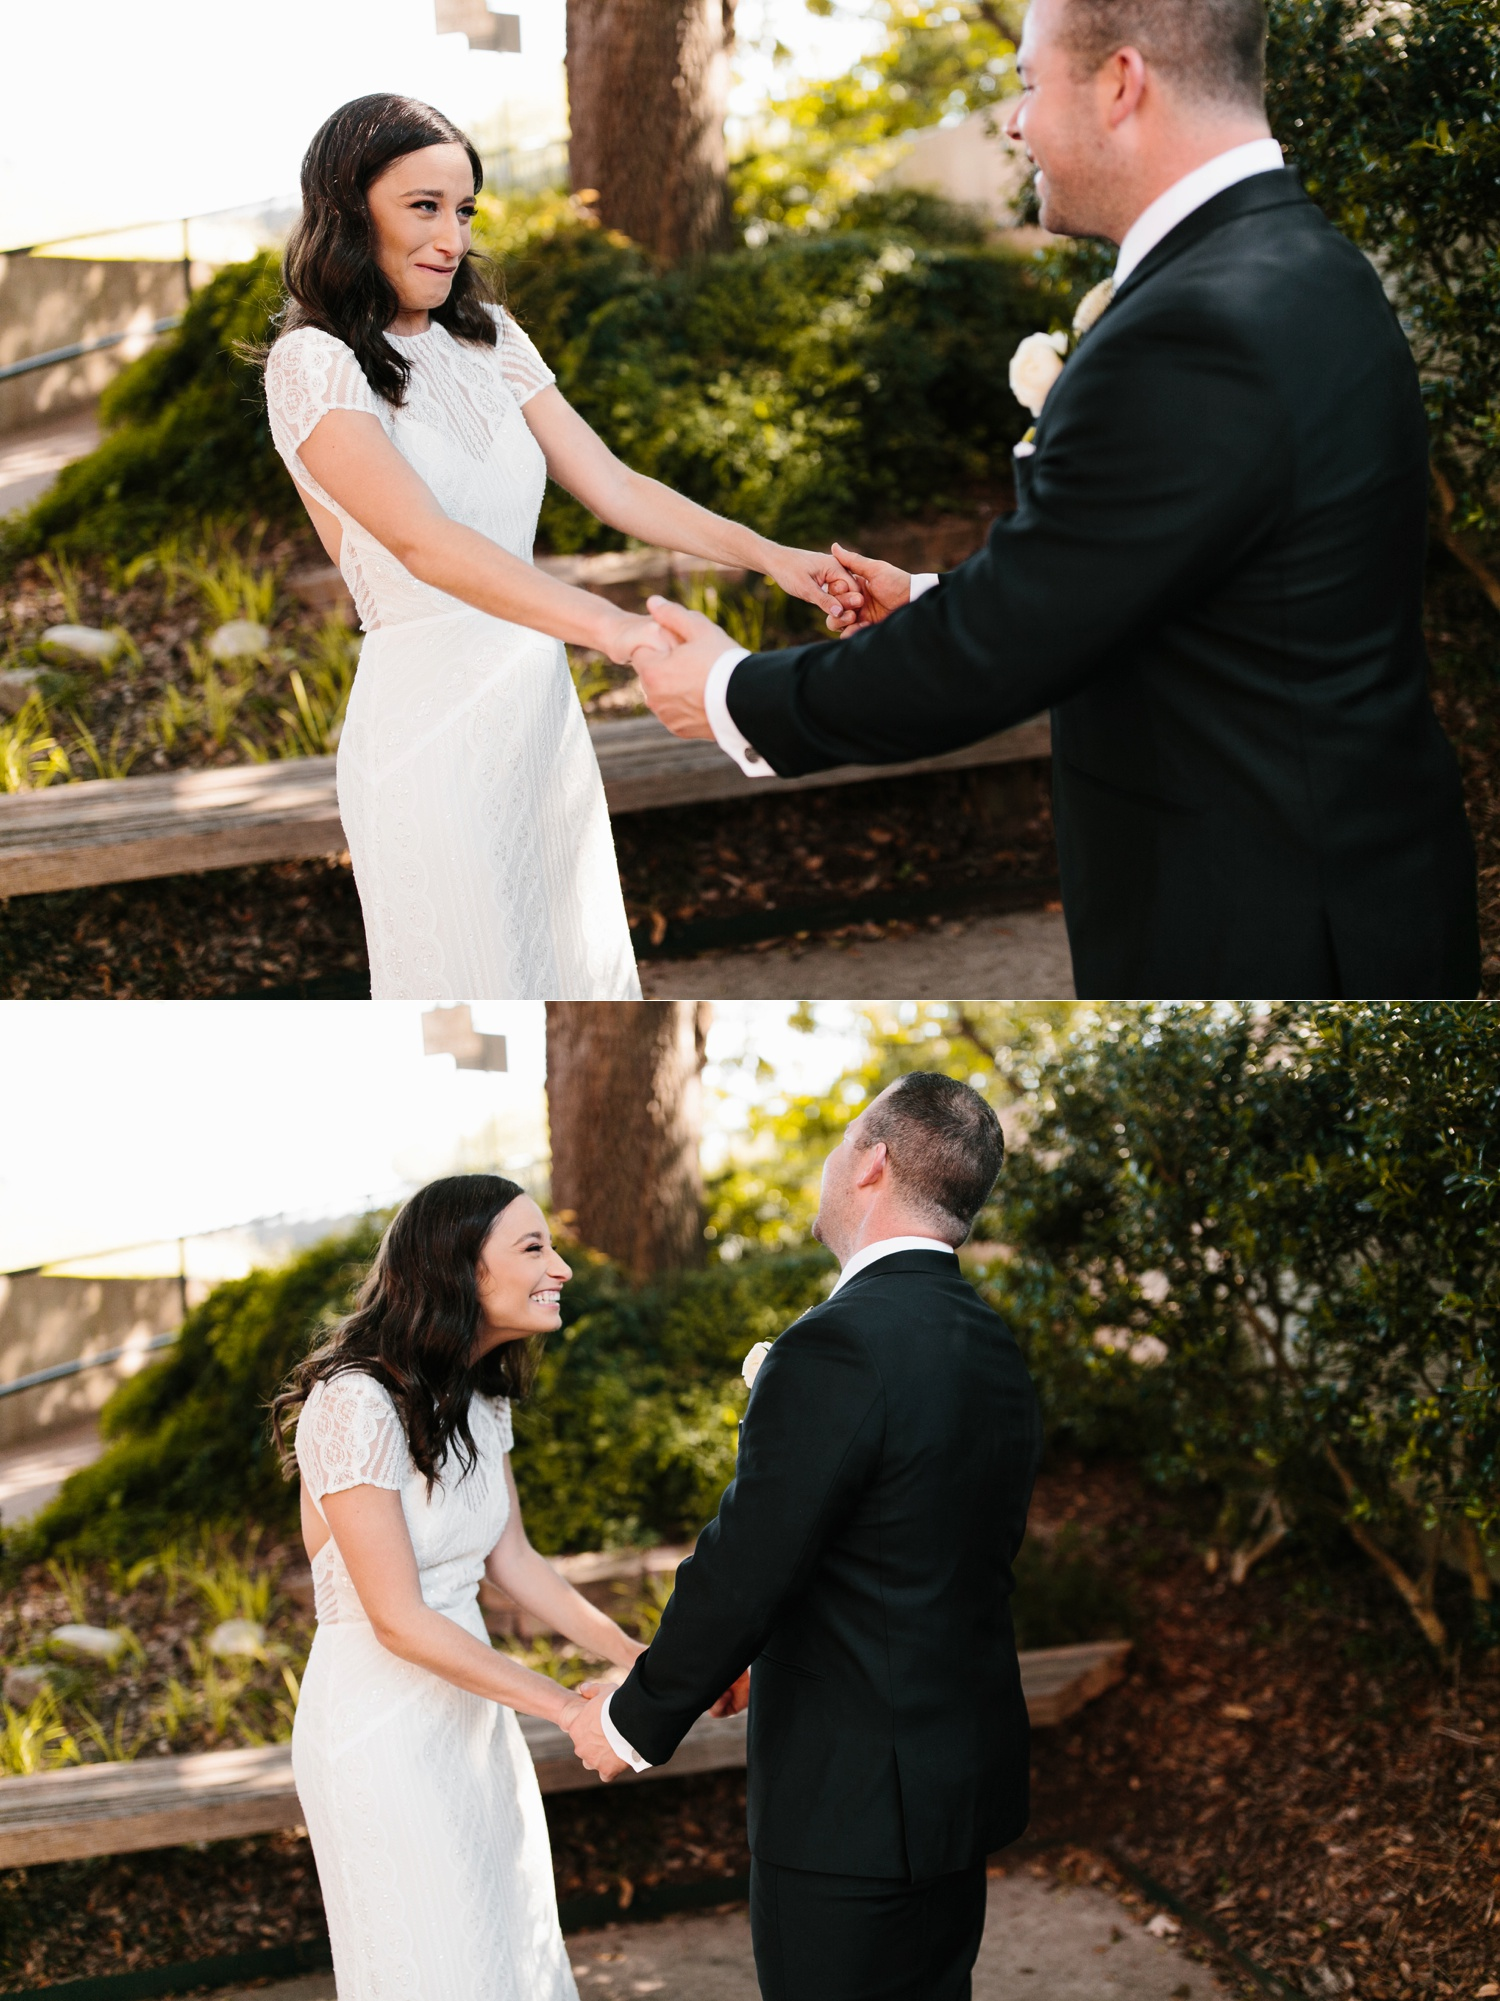 Kadee + Tyler | a raw, emotional wedding at the Filter Building on White Rock Lake in Dallas, TX by North Texas Wedding Photographer, Rachel Meagan Photography 080